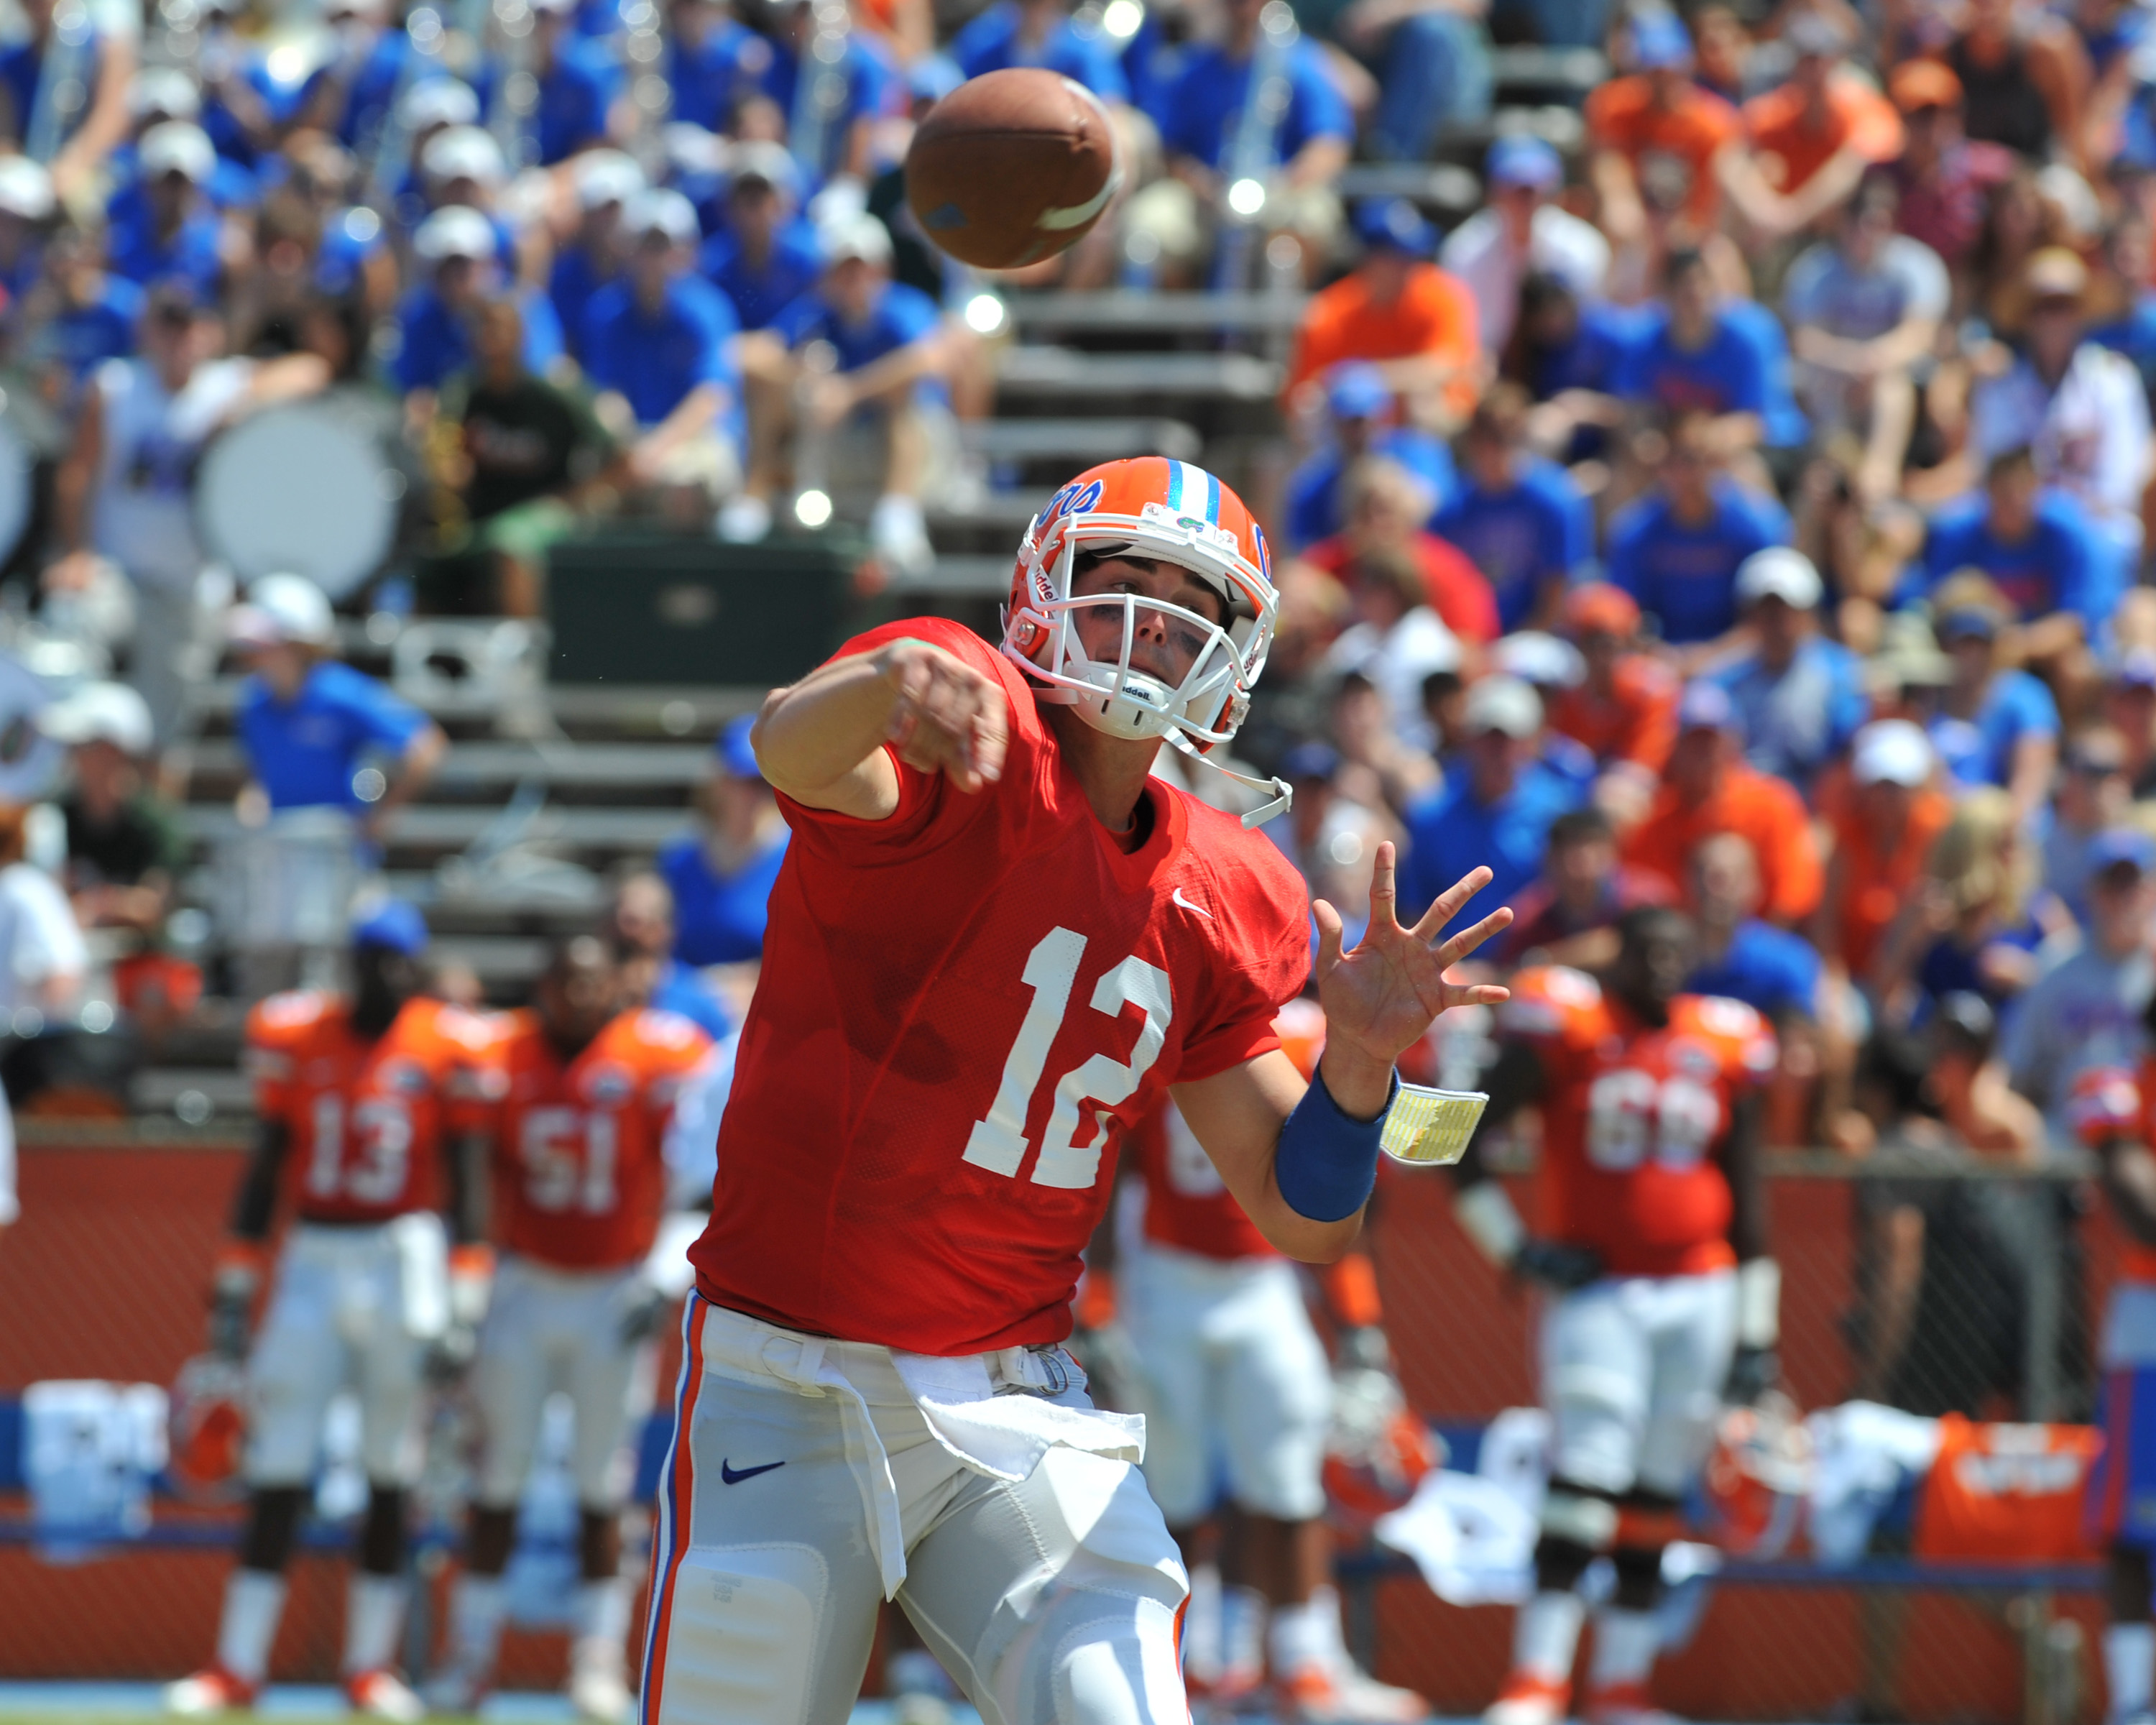 GAINESVILLE, FL - APRIL 9:  Quarterback John Brantley #12 of the Florida Gators releases a pass during the Orange and Blue spring football game April 9, 2011 at Ben Hill Griffin Stadium in Gainesville, Florida.  (Photo by Al Messerschmidt/Getty Images)